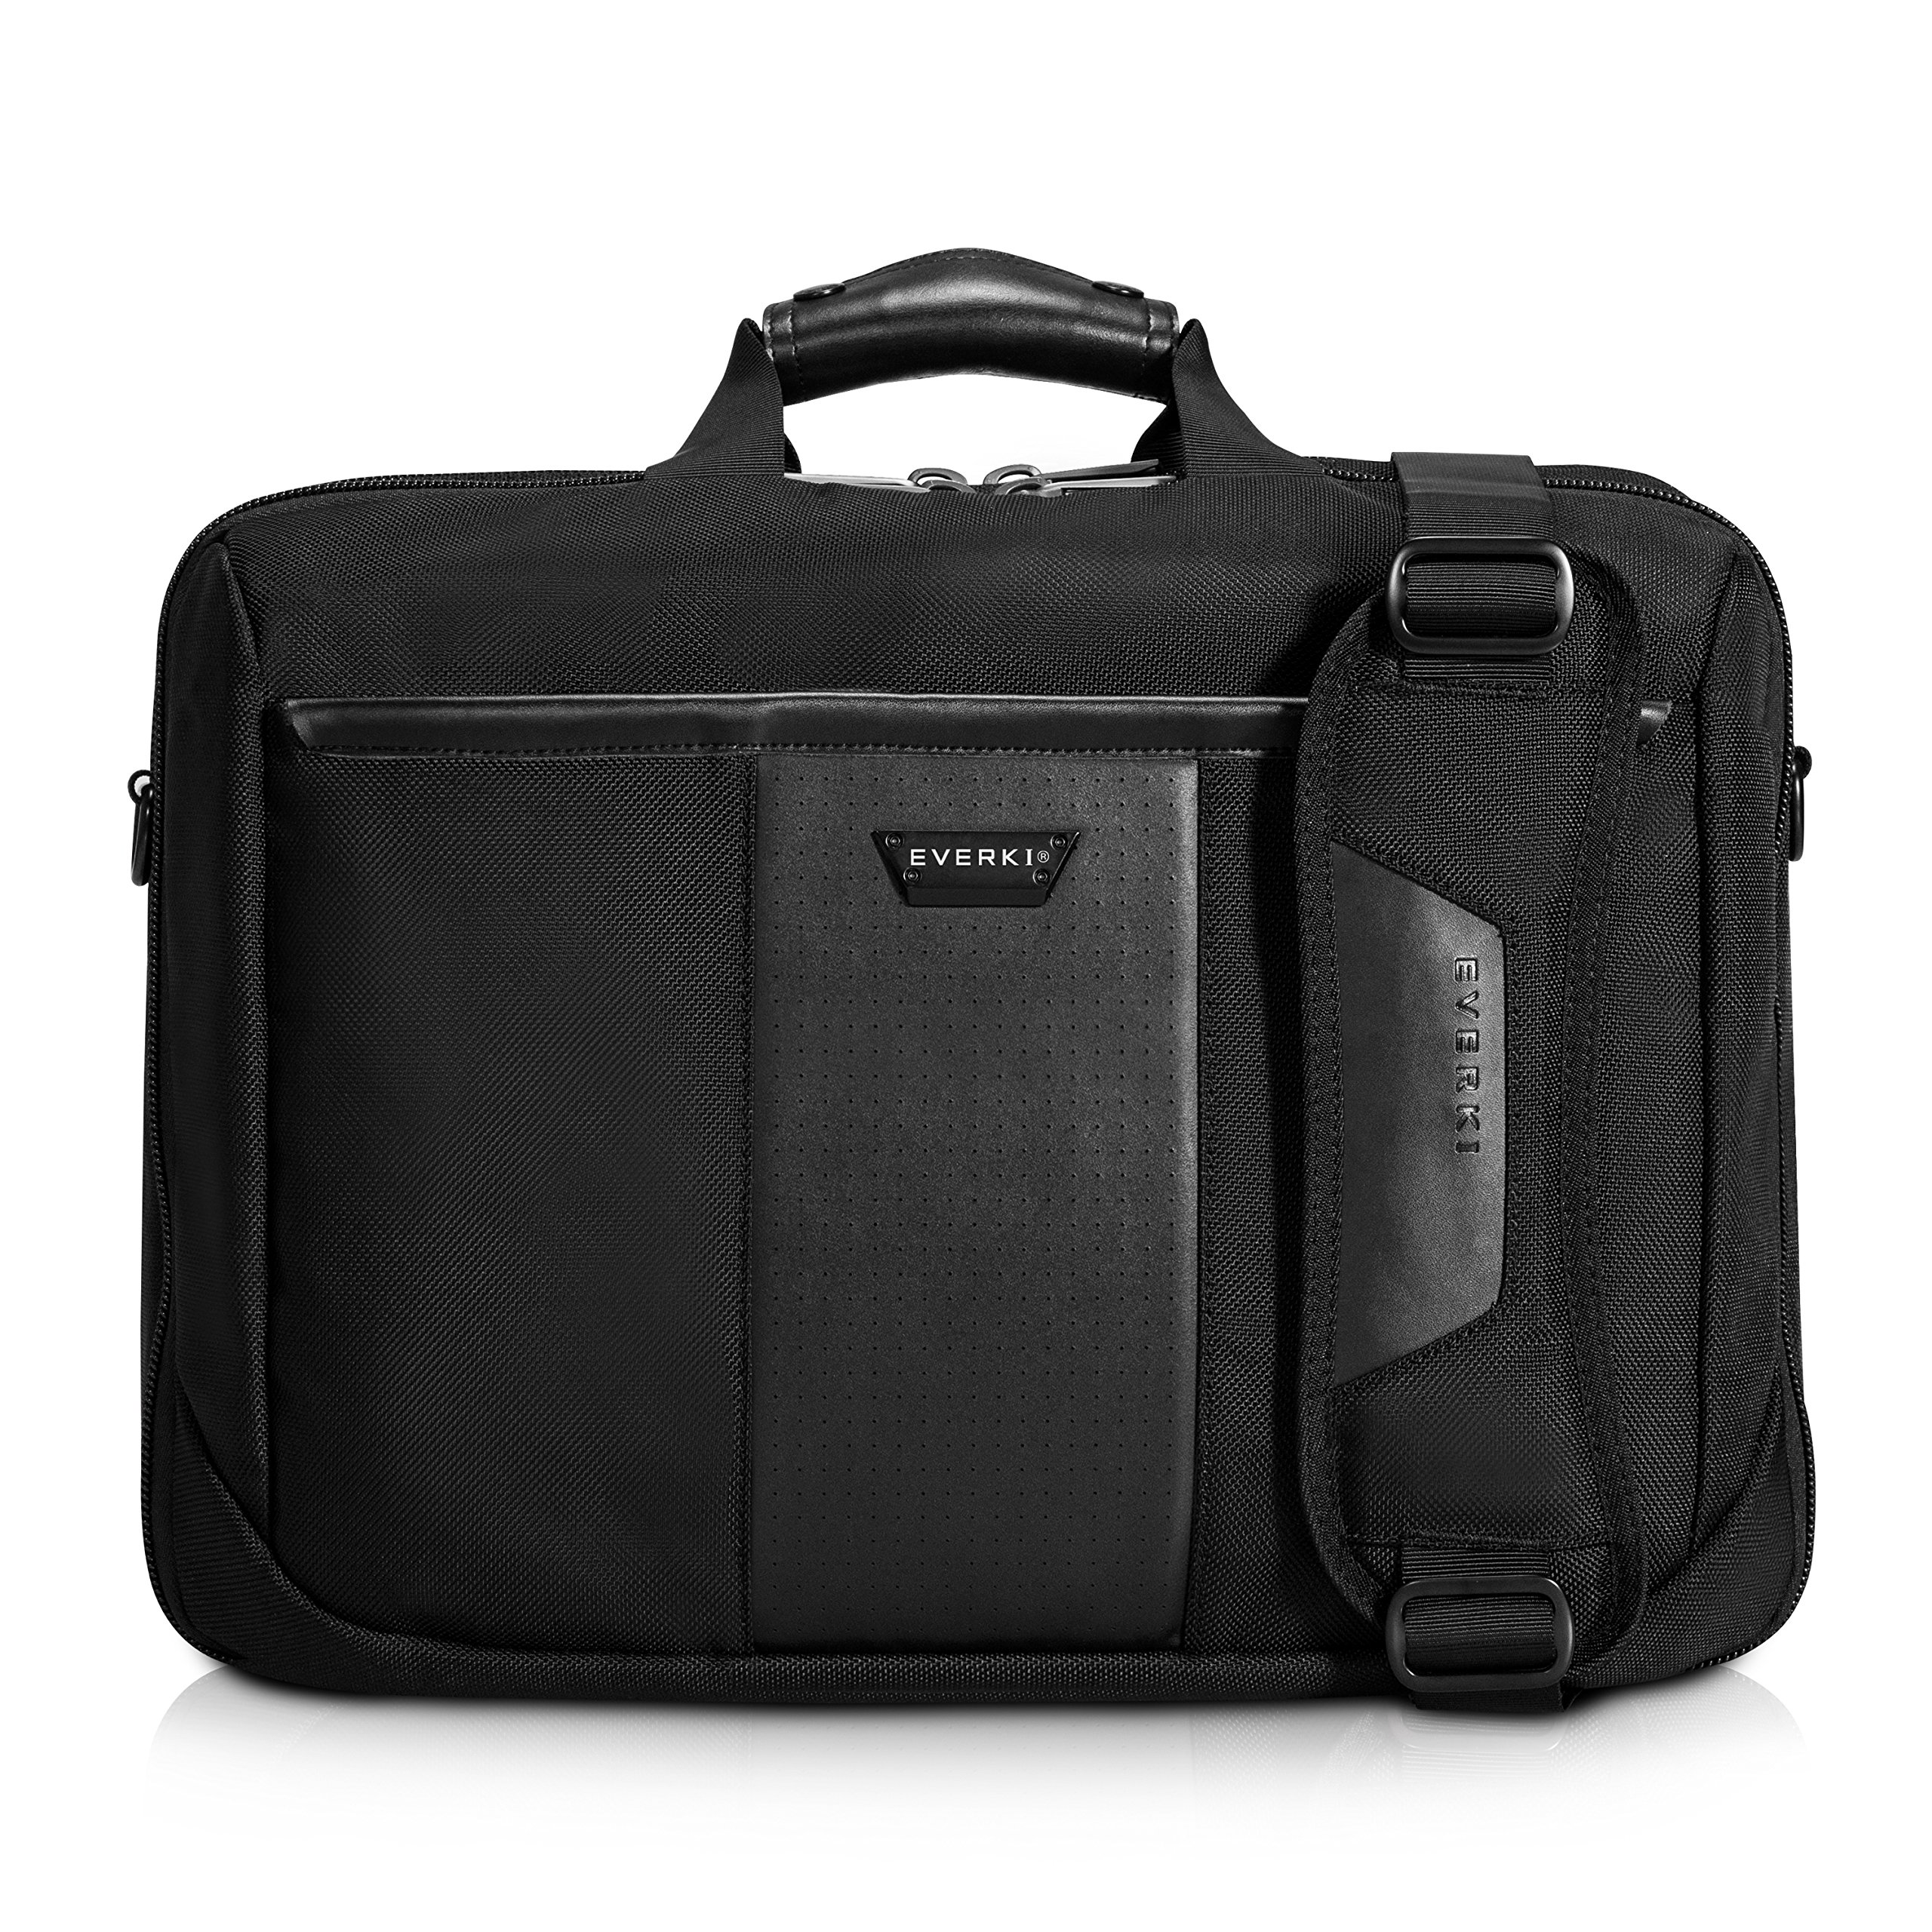 Everki Versa Premium Checkpoint Friendly Laptop Bag - Briefcase, Upto 17.3-Inch (EKB427BK17)